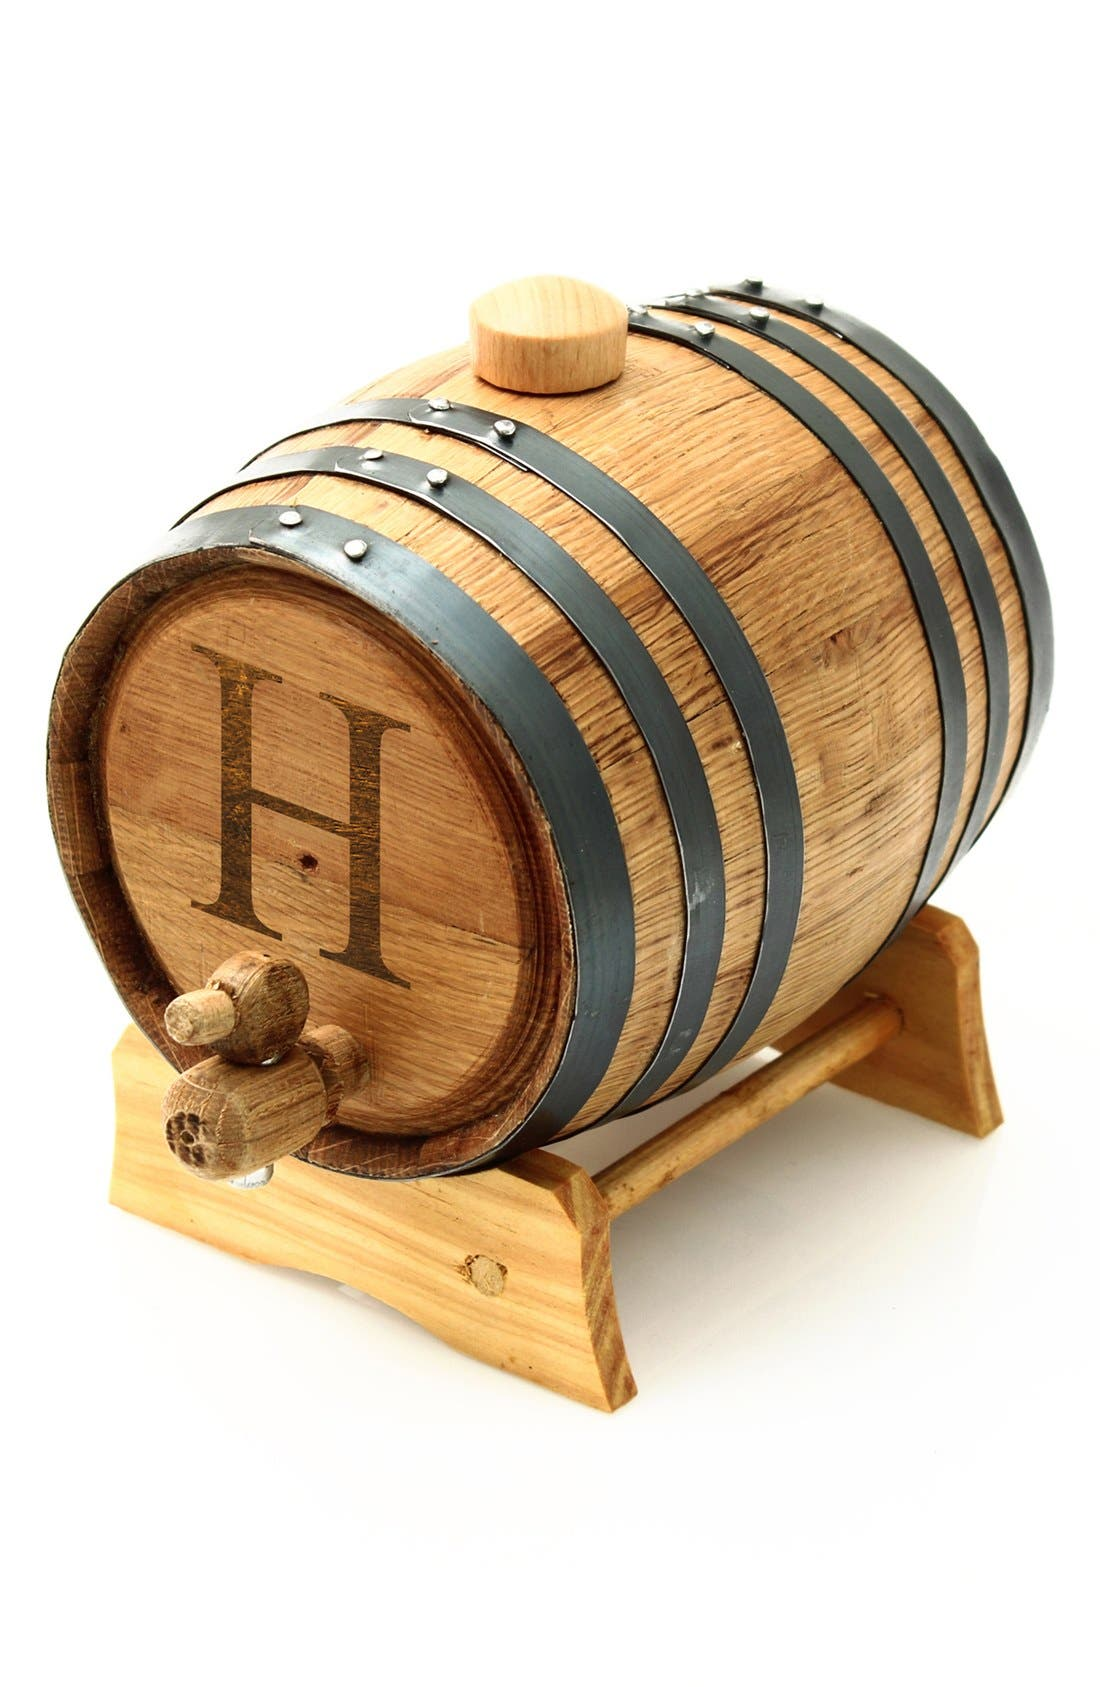 Main Image - Cathy's Concepts Monogram Oak Whiskey Barrel, Small